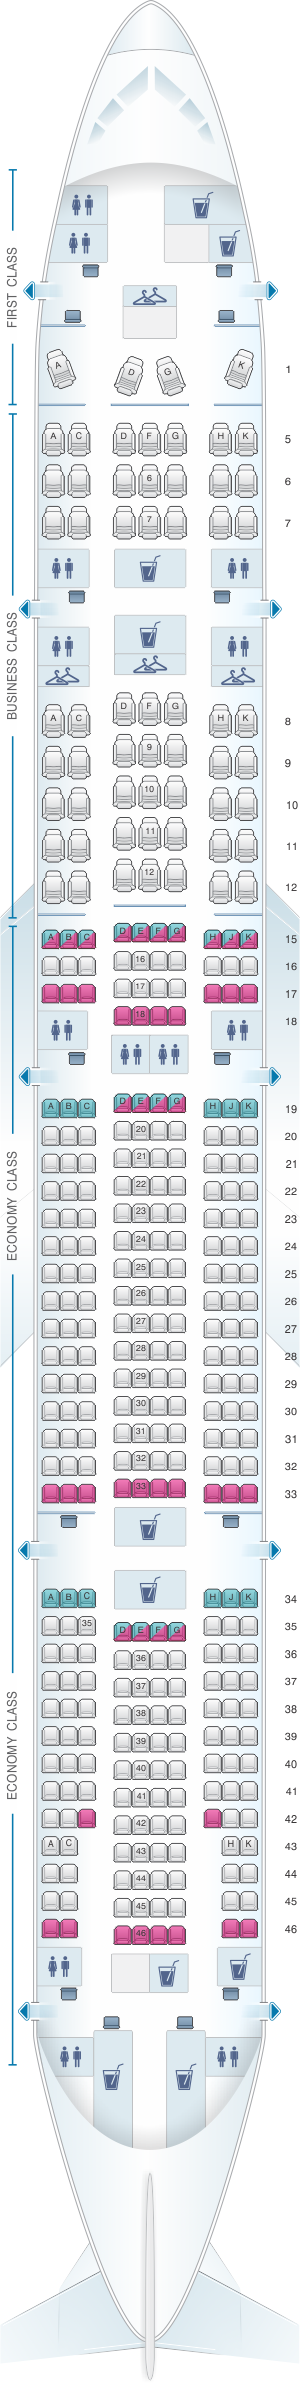 Seat map for LATAM Airlines Brasil Boeing B777 300ER V1